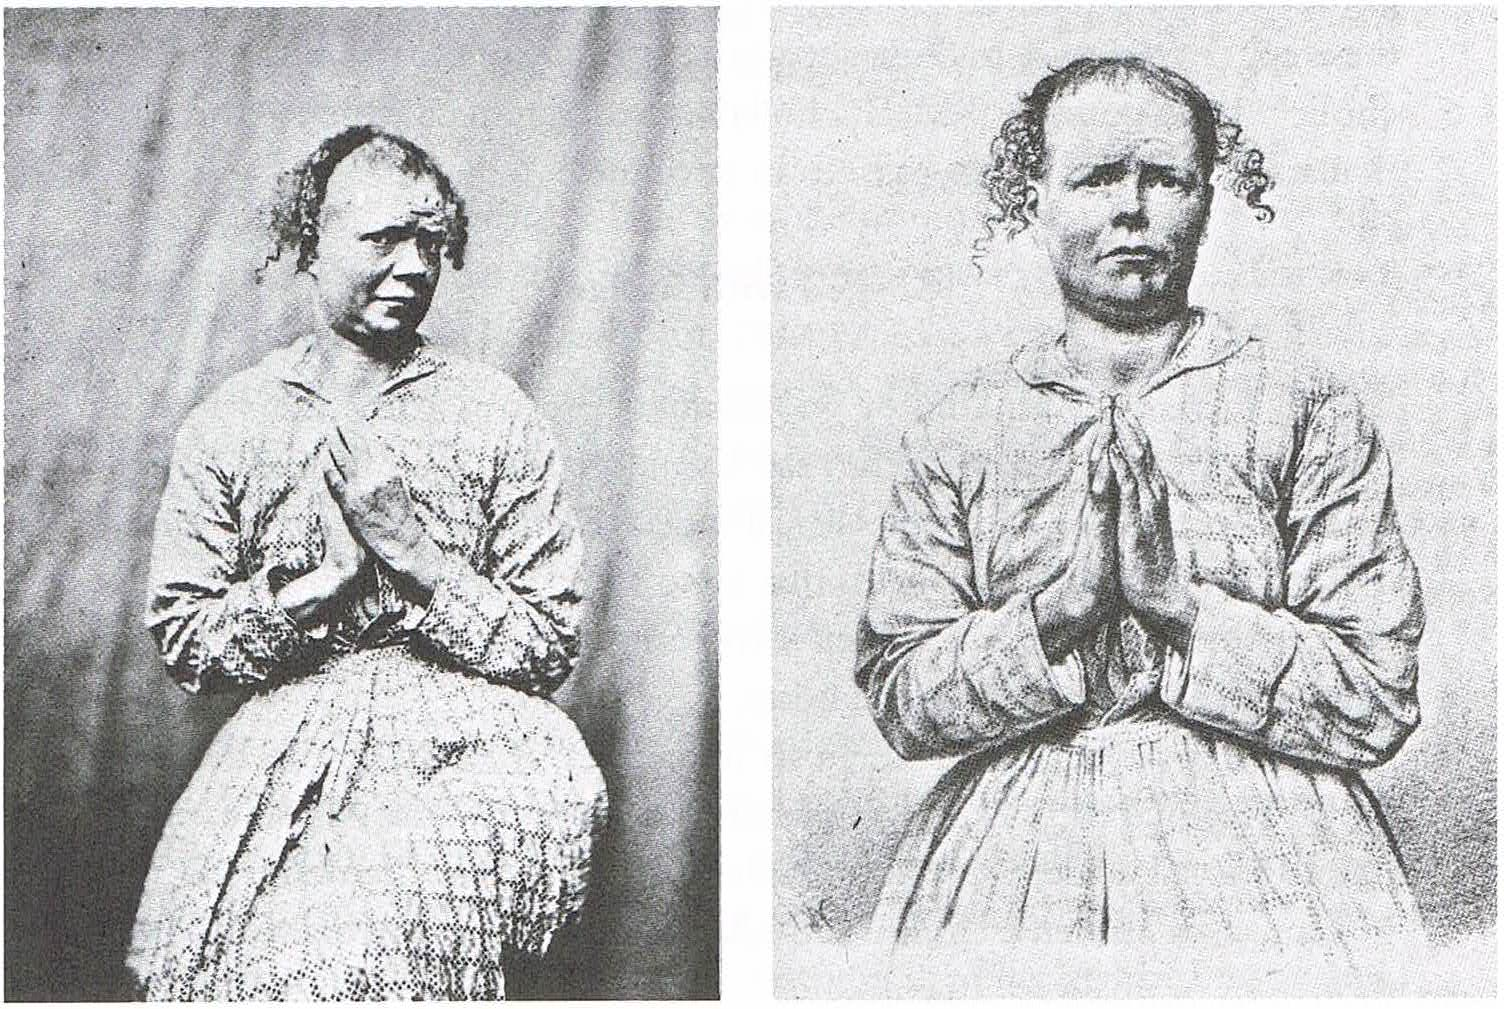 Religious Mania (Photograph: Left, Engraving: Right). Taken from Didi-Huberman, Georges, Invention of Hysteria: Charcot and the Photographic Iconography of the Salpêtrière, 2004, MIT Press